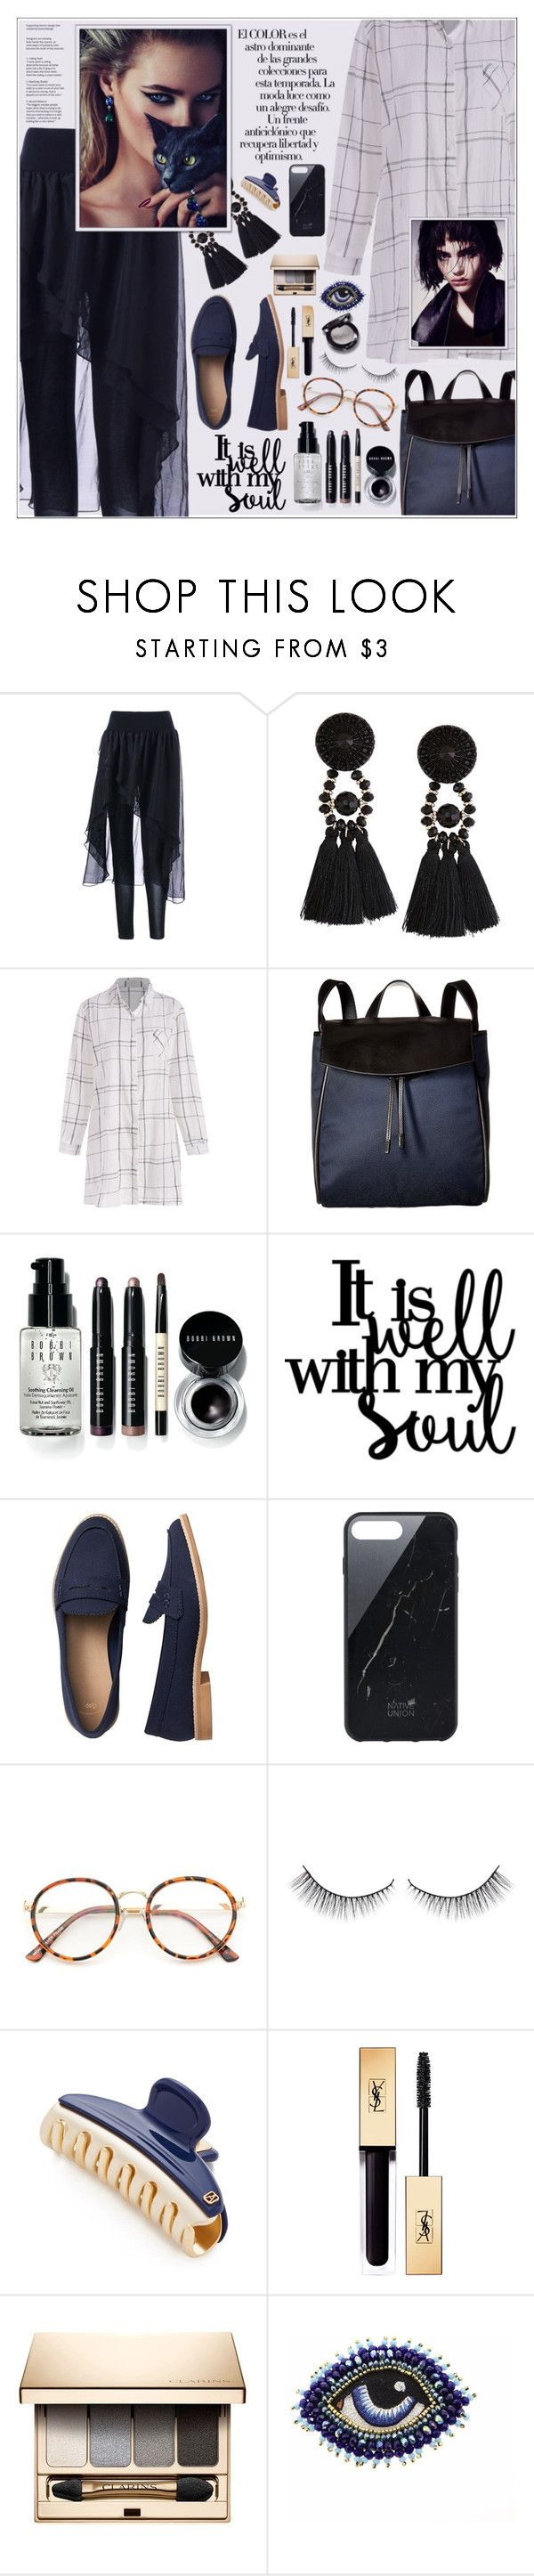 """♥ Last Minute Outfit ♥"" by av-anul ❤ liked on Polyvore featuring JuJu, Skagen, Bobbi Brown Cosmetics, Gap, Native Union, Alexandre de Paris, Clarins and Christina Choi Cosmetics"